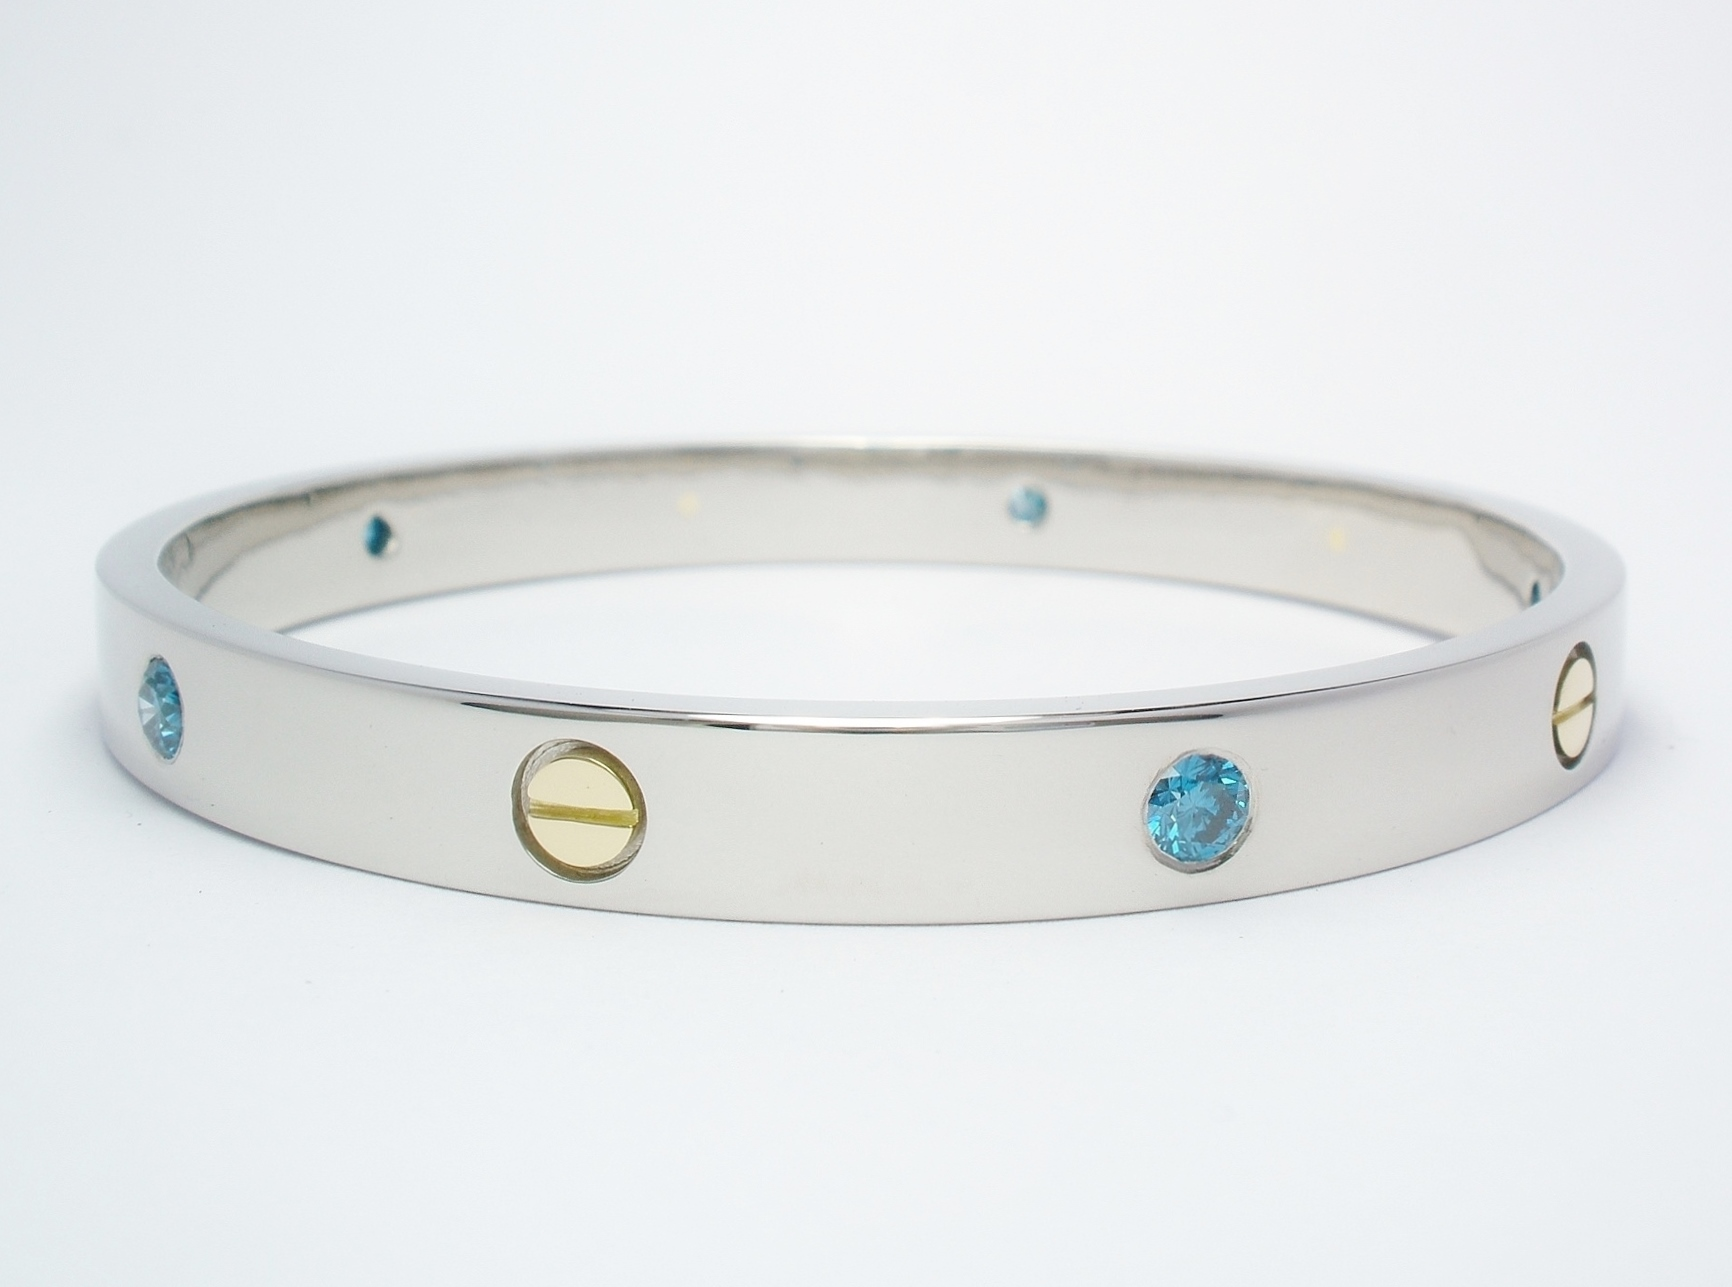 A solid palladium bangle with 18ct. yellow gold 'screw heads' inlayed and flush set with ocean blue round brilliant cut diamonds evenly spaced around and alternating with the screw heads.